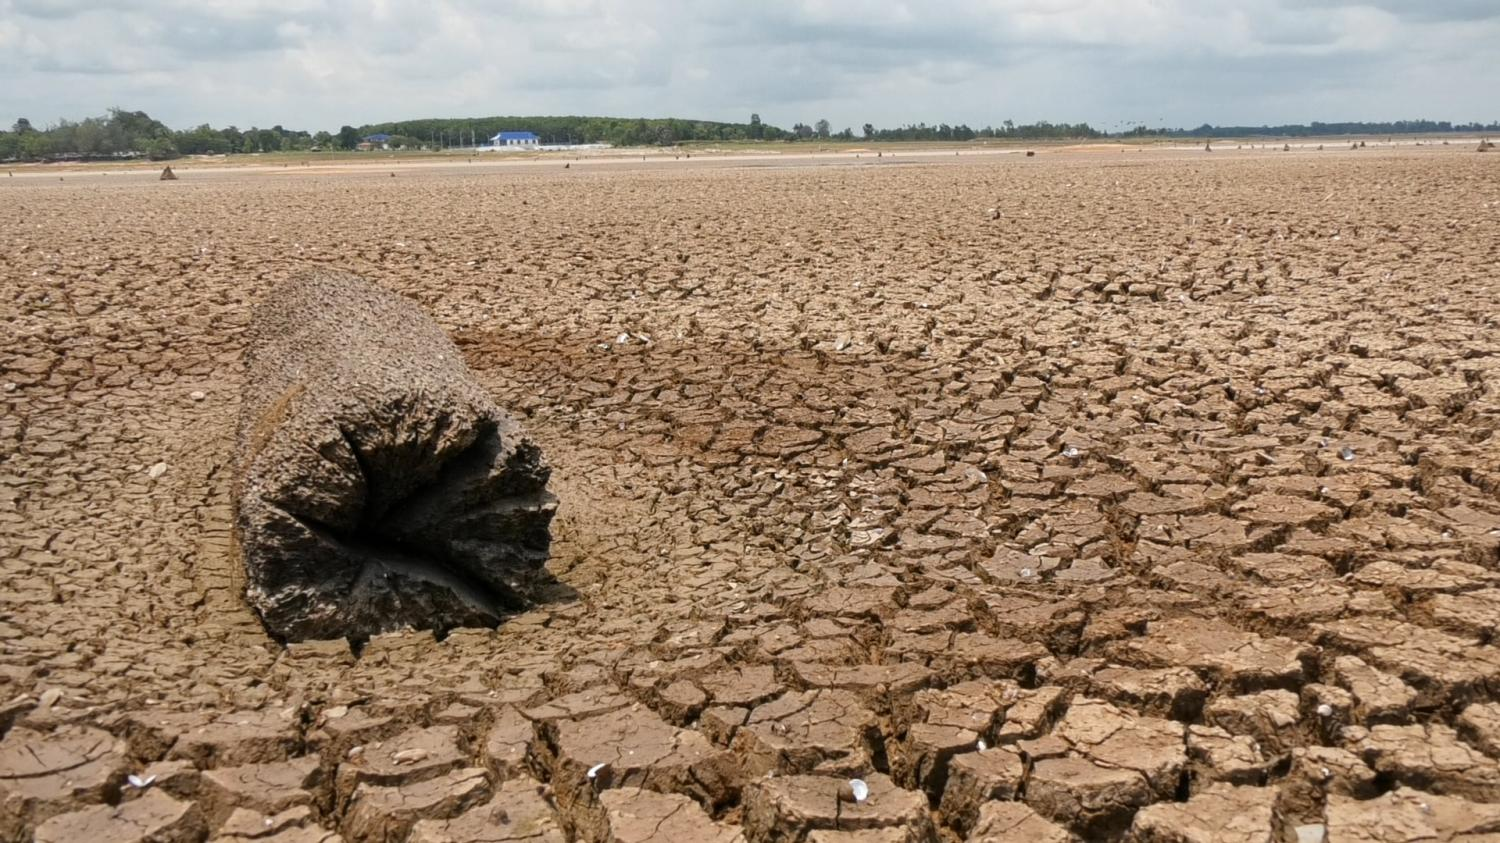 Hoteliers uneasy over Northeast drought